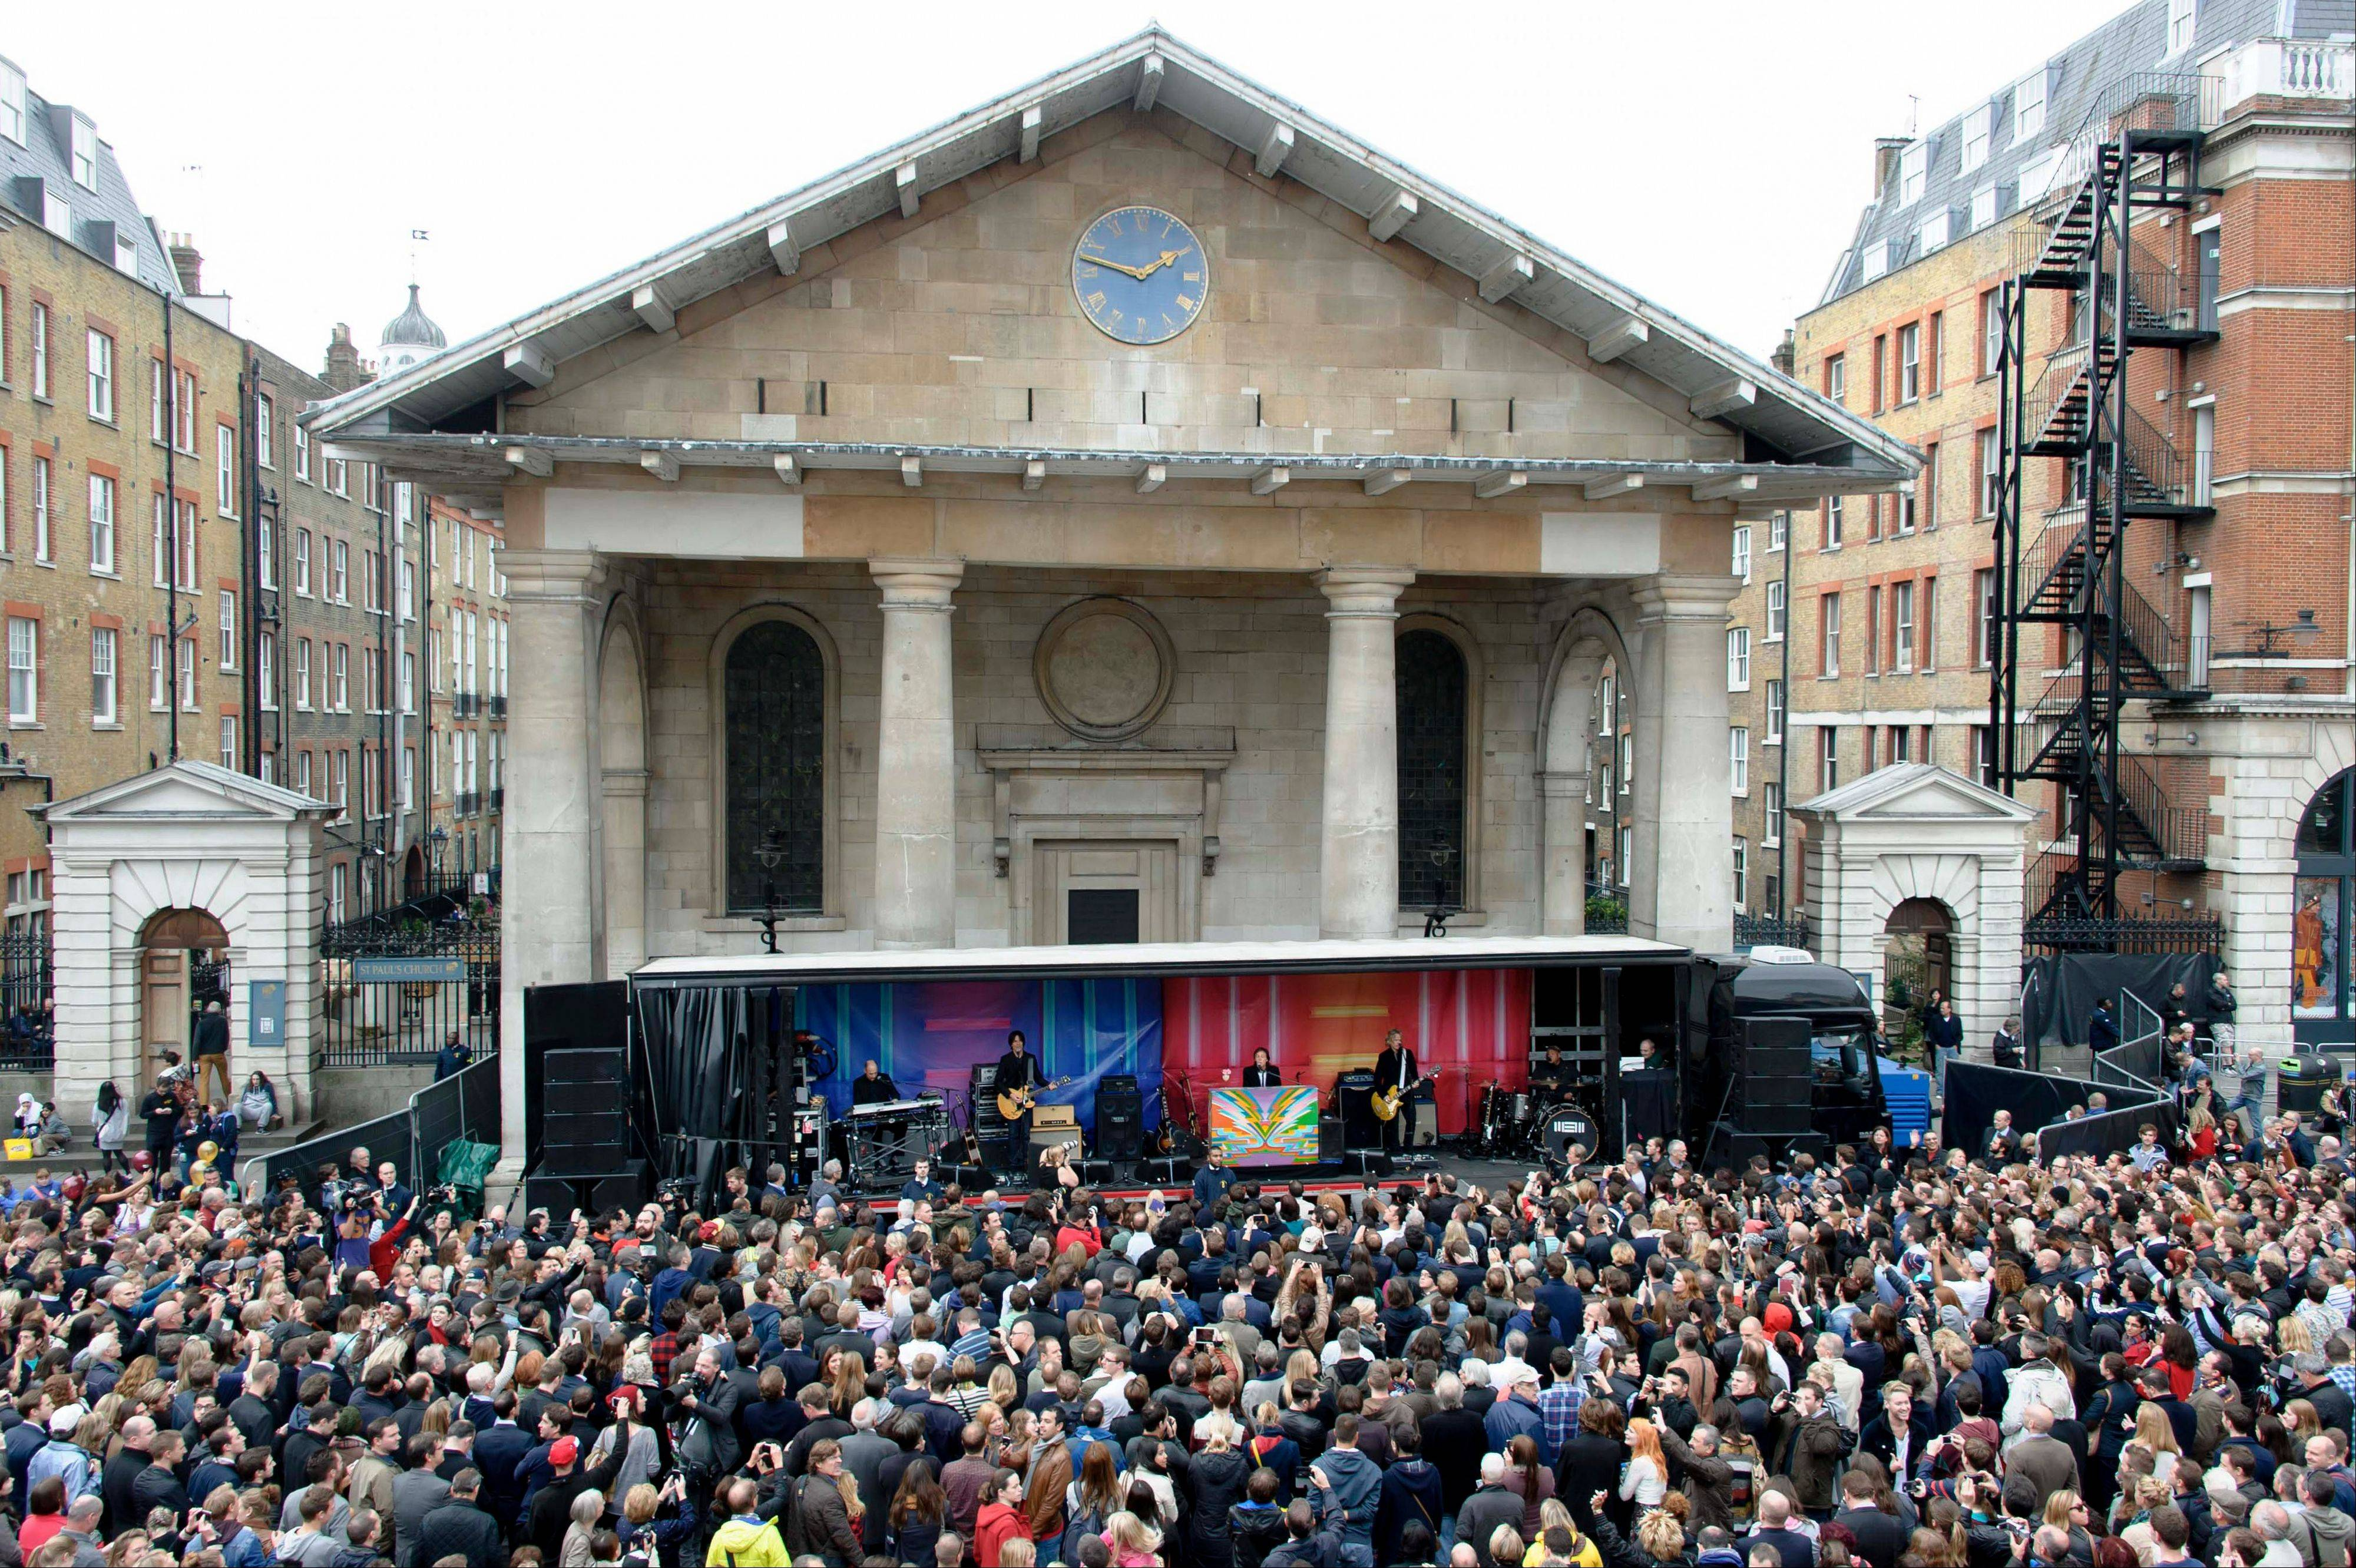 Crowds gather to watch Sir Paul McCartney and his band in Covent Garden, London, Friday. The surprise gig lasted for 20 minutes during lunchtime following a similar appearance in New York last Friday.